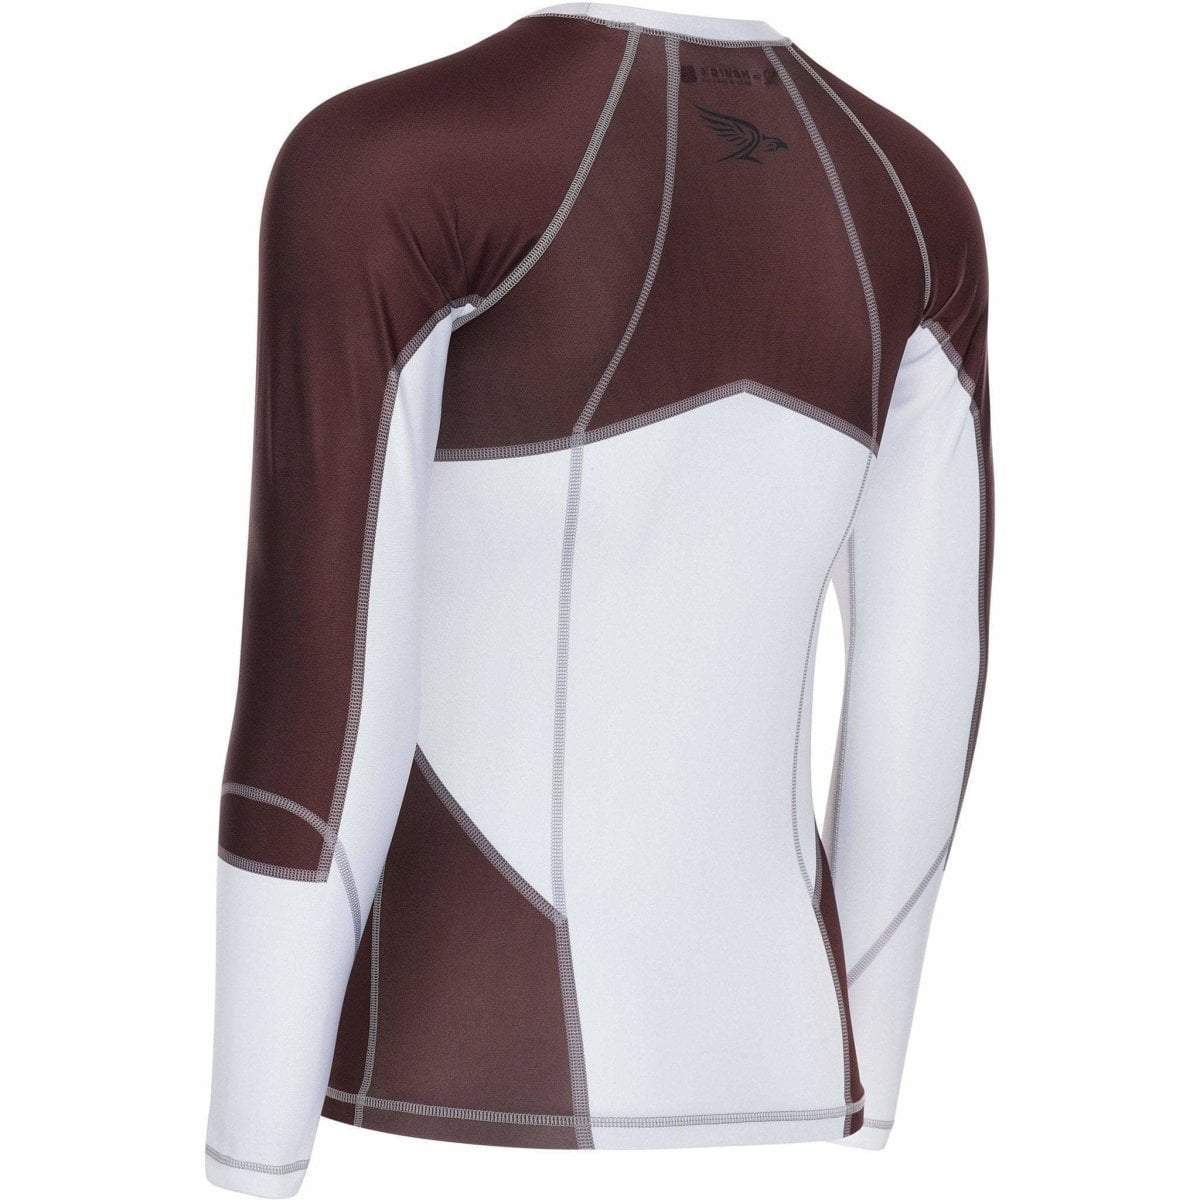 Habrok Rash Guard Transform 2.5 | Rash Guard | Men